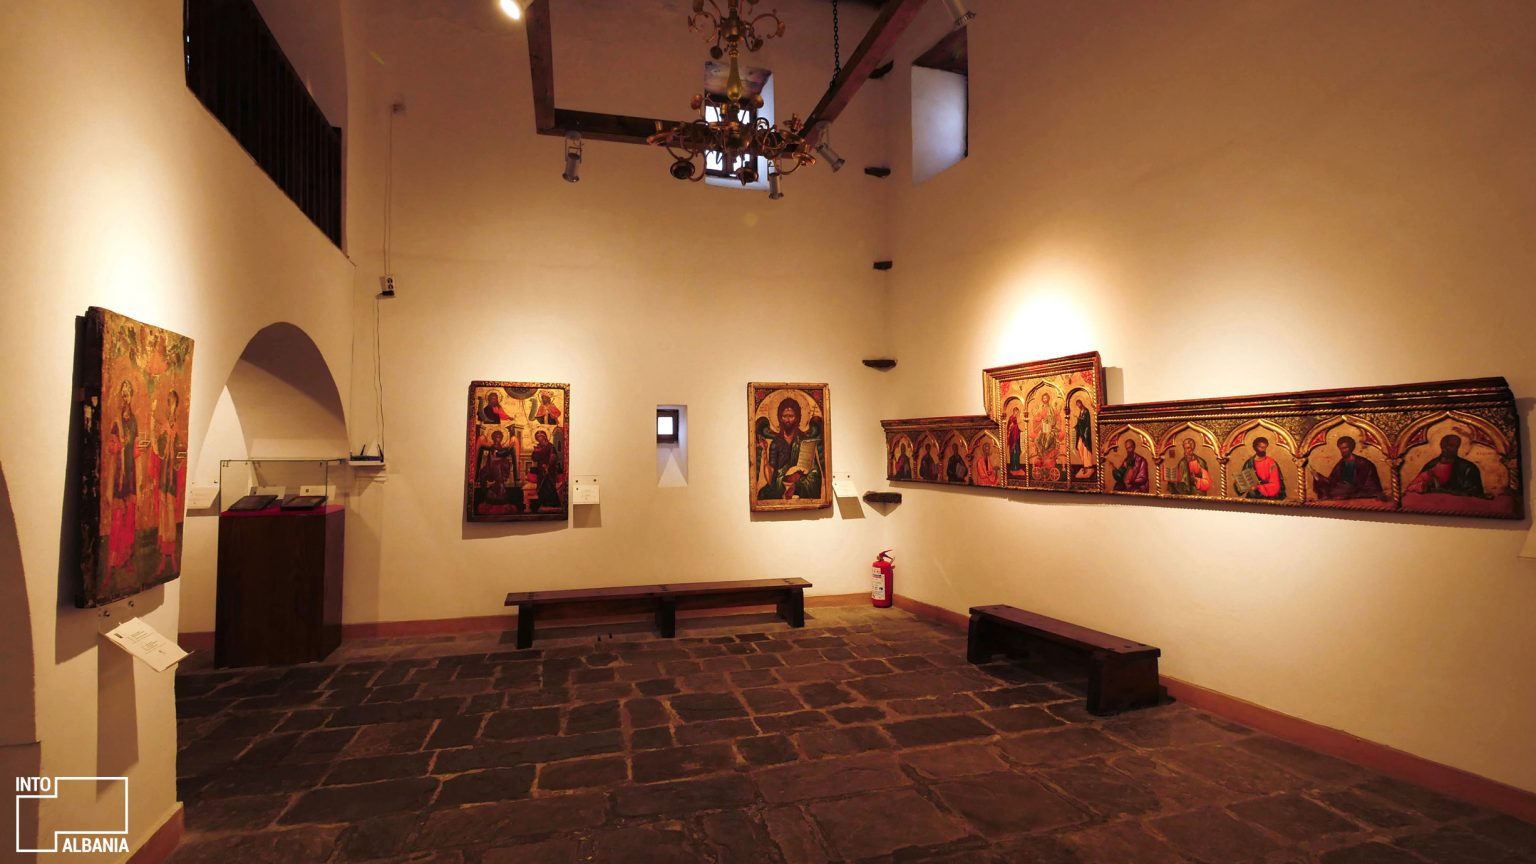 Onufri Museum, Berat, photo by IntoAlbania